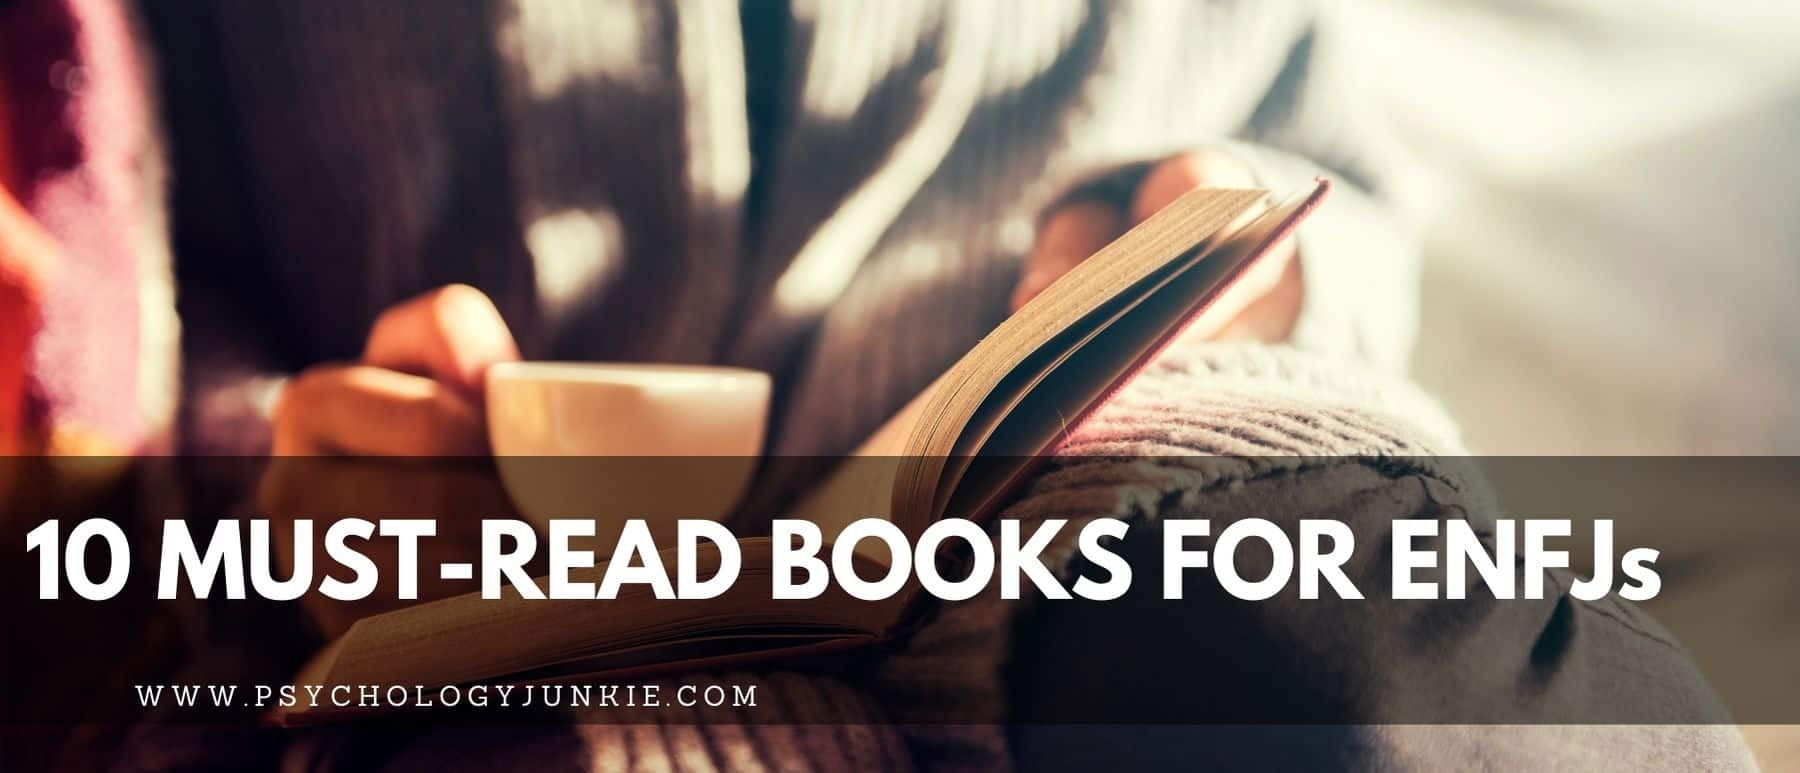 Discover 10 books that ENFJs mention as favorites again and again. #MBTI #Personality #ENFJ